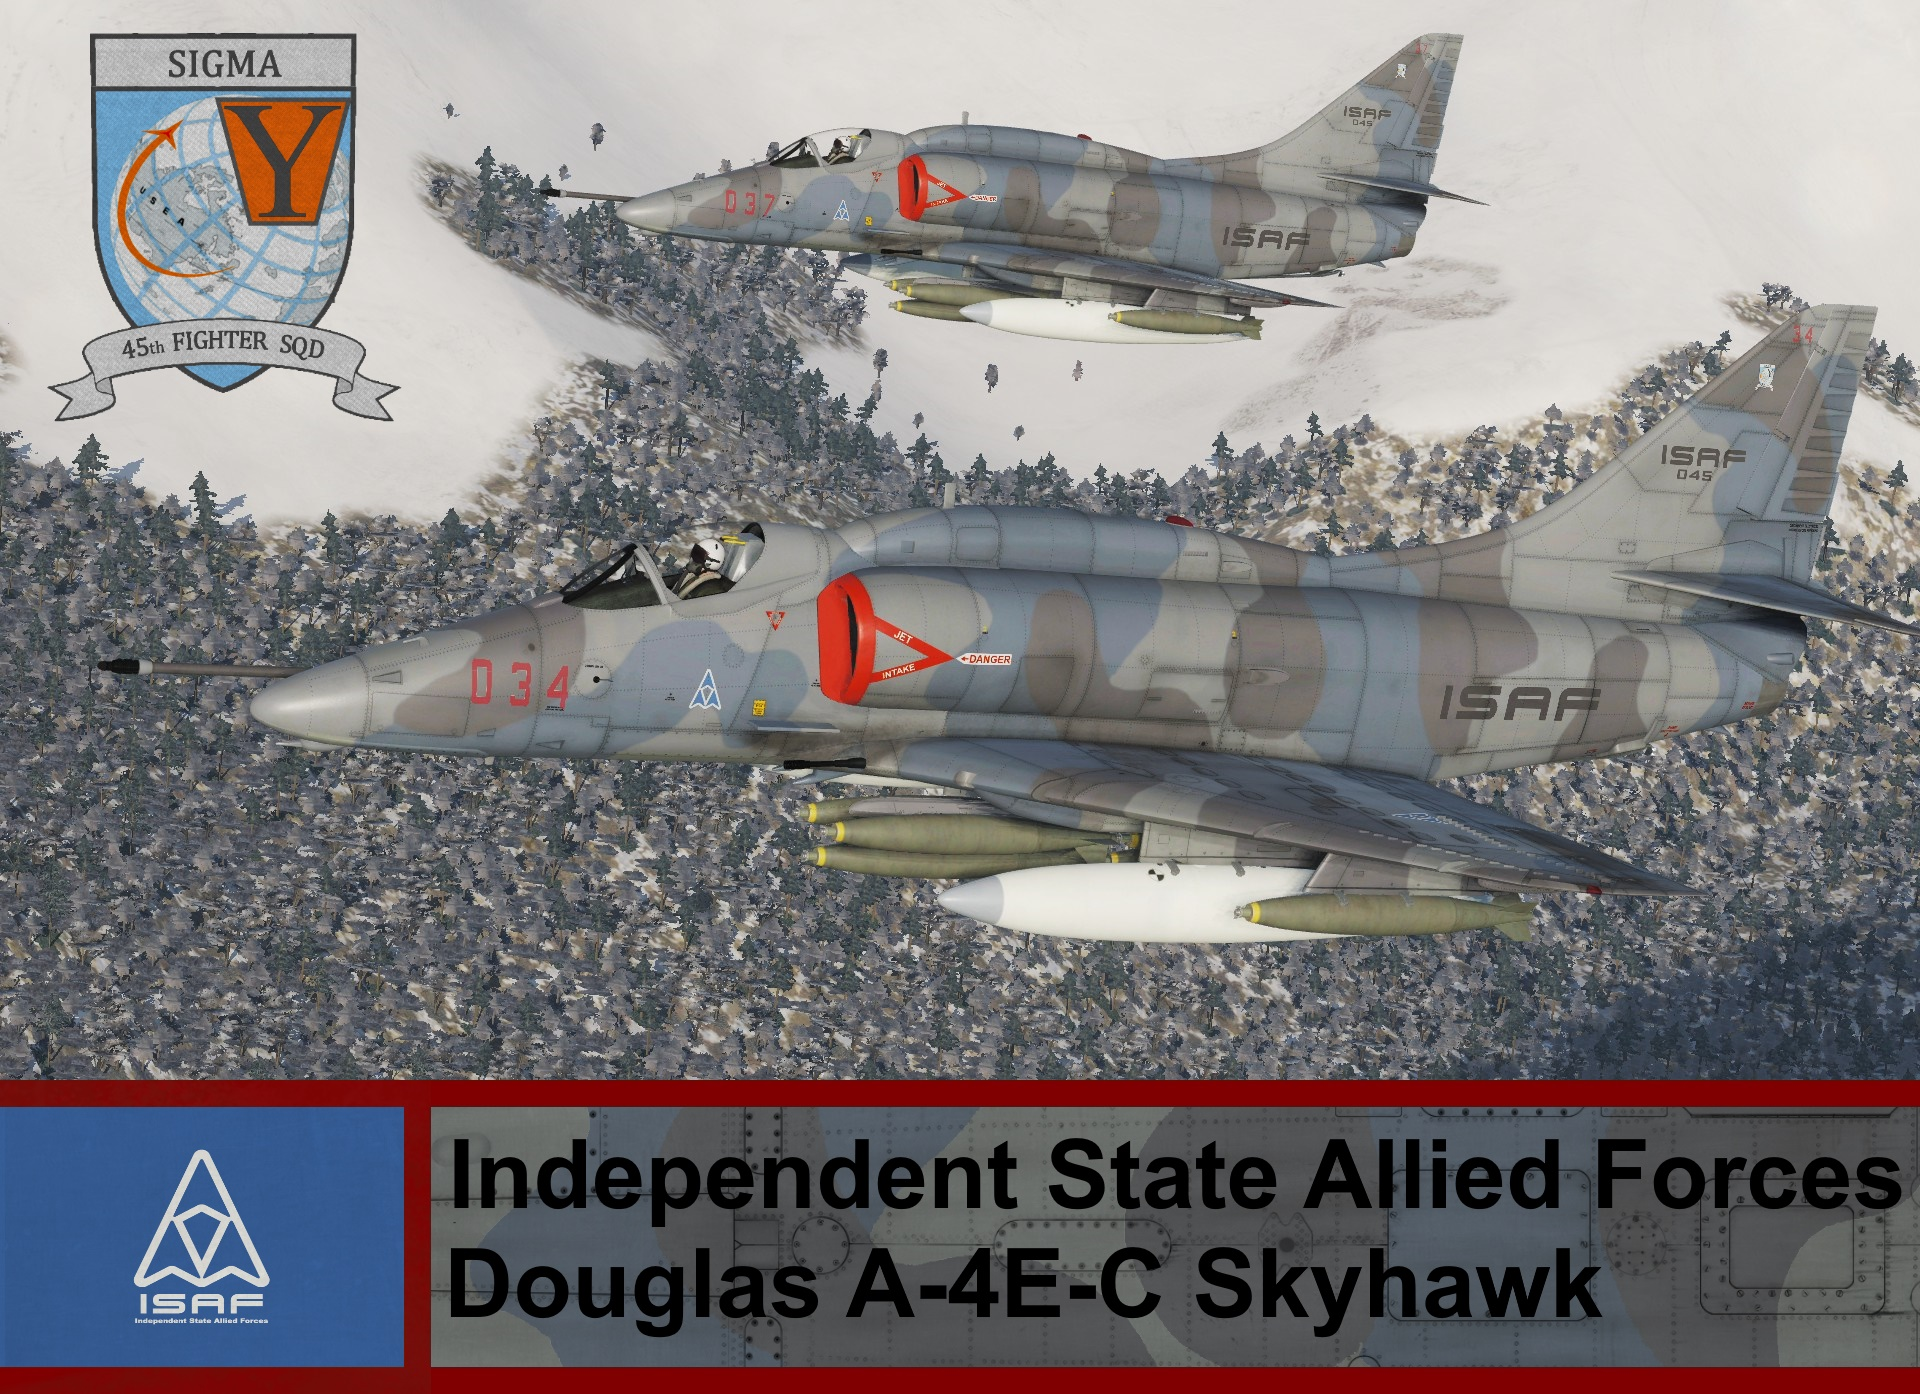 Independent State Allied Forces A-4E-C Skyhawk - Ace Combat 4